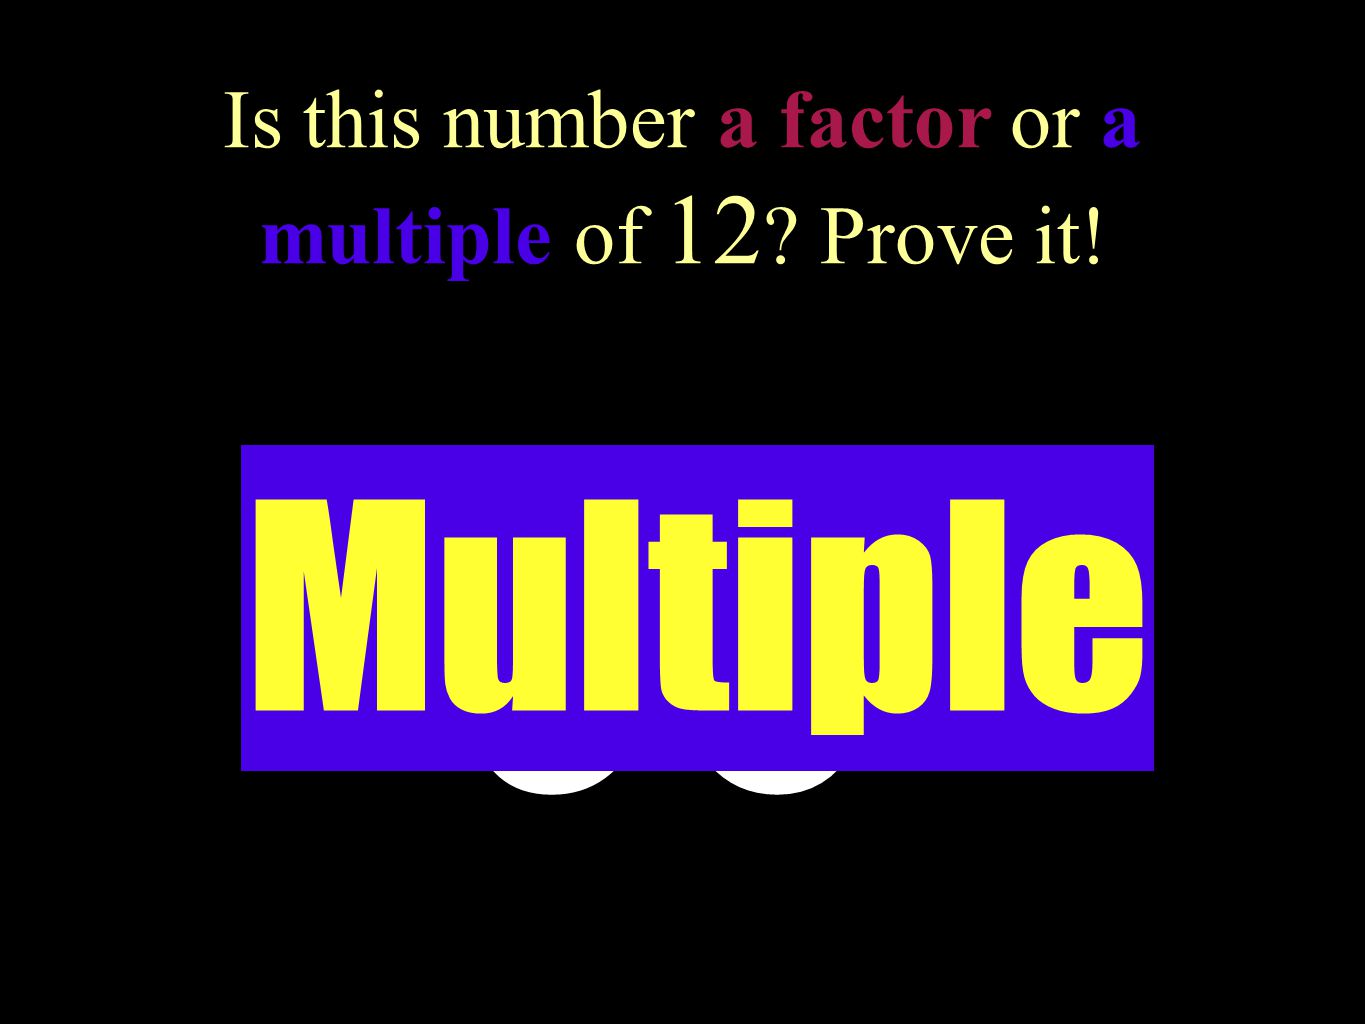 Is this number a factor or a multiple of 12 Prove it!